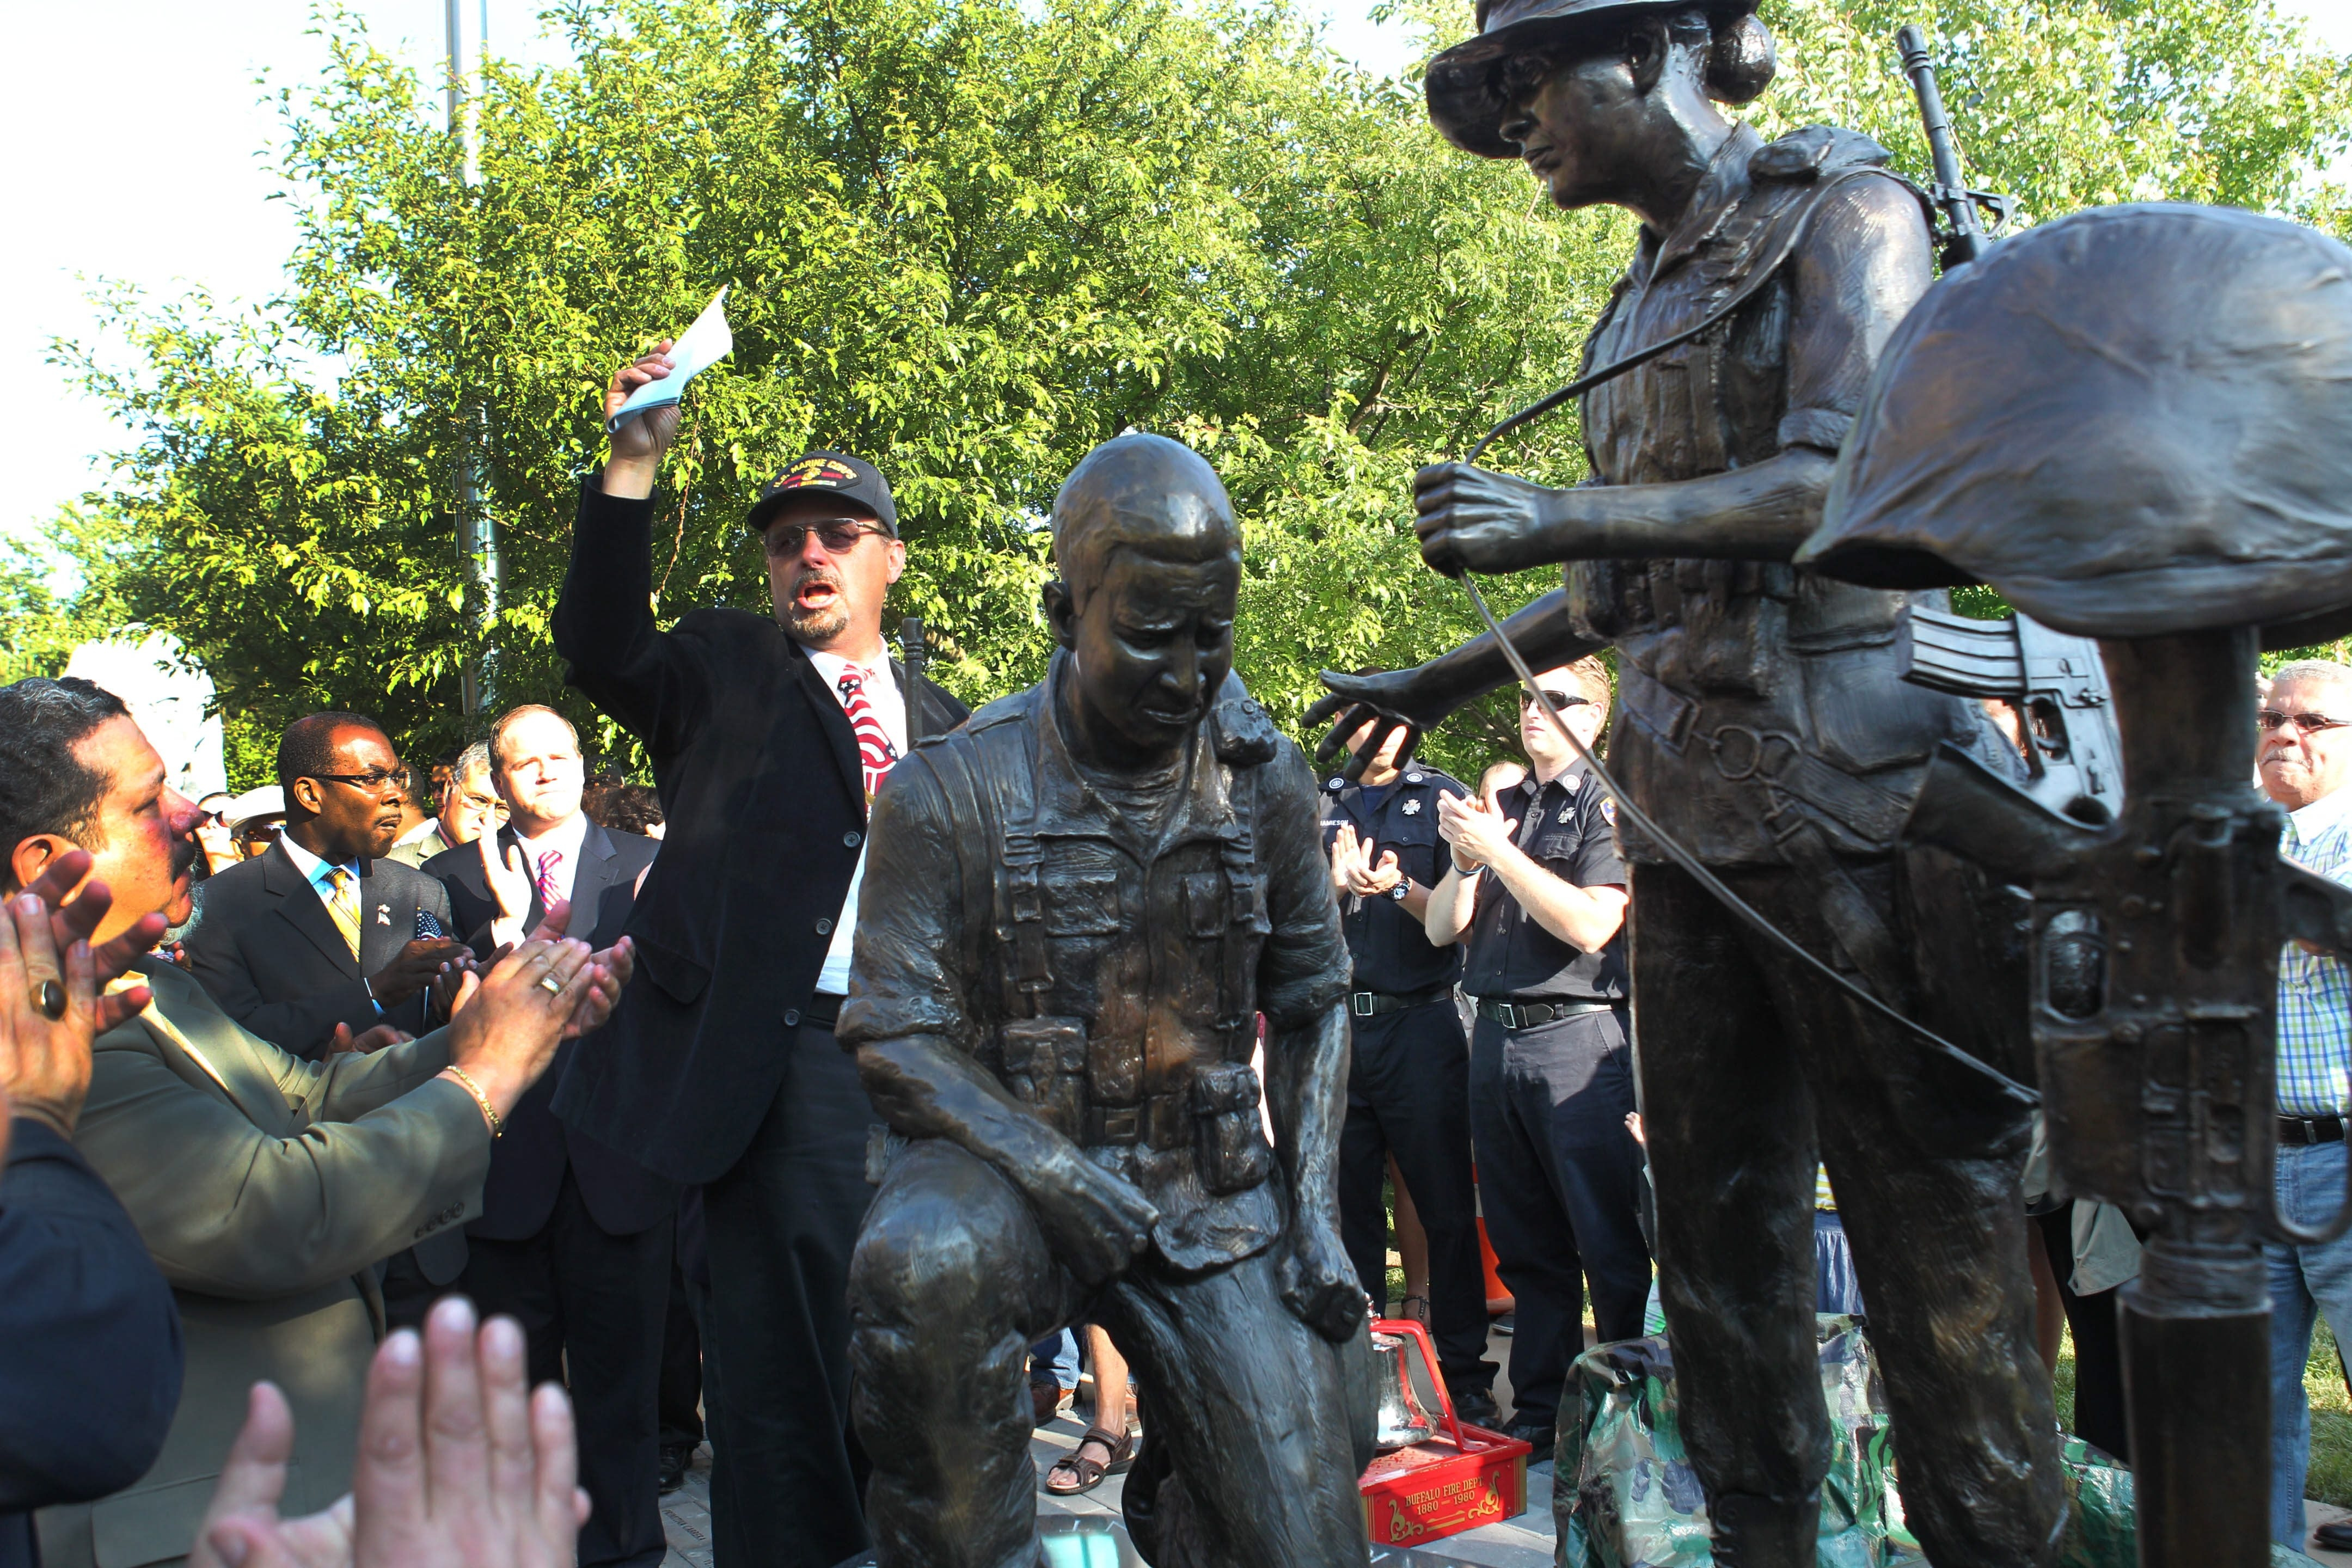 The region's first monument honoring Hispanic-American military veterans was unveiled Friday at the Buffalo and Erie County Naval & Military Park. Jose Pizarro, center, chairman of the local memorial committee, pays tribute to all Hispanics who have served.  For a photo gallery, go to BuffaloNews.com.